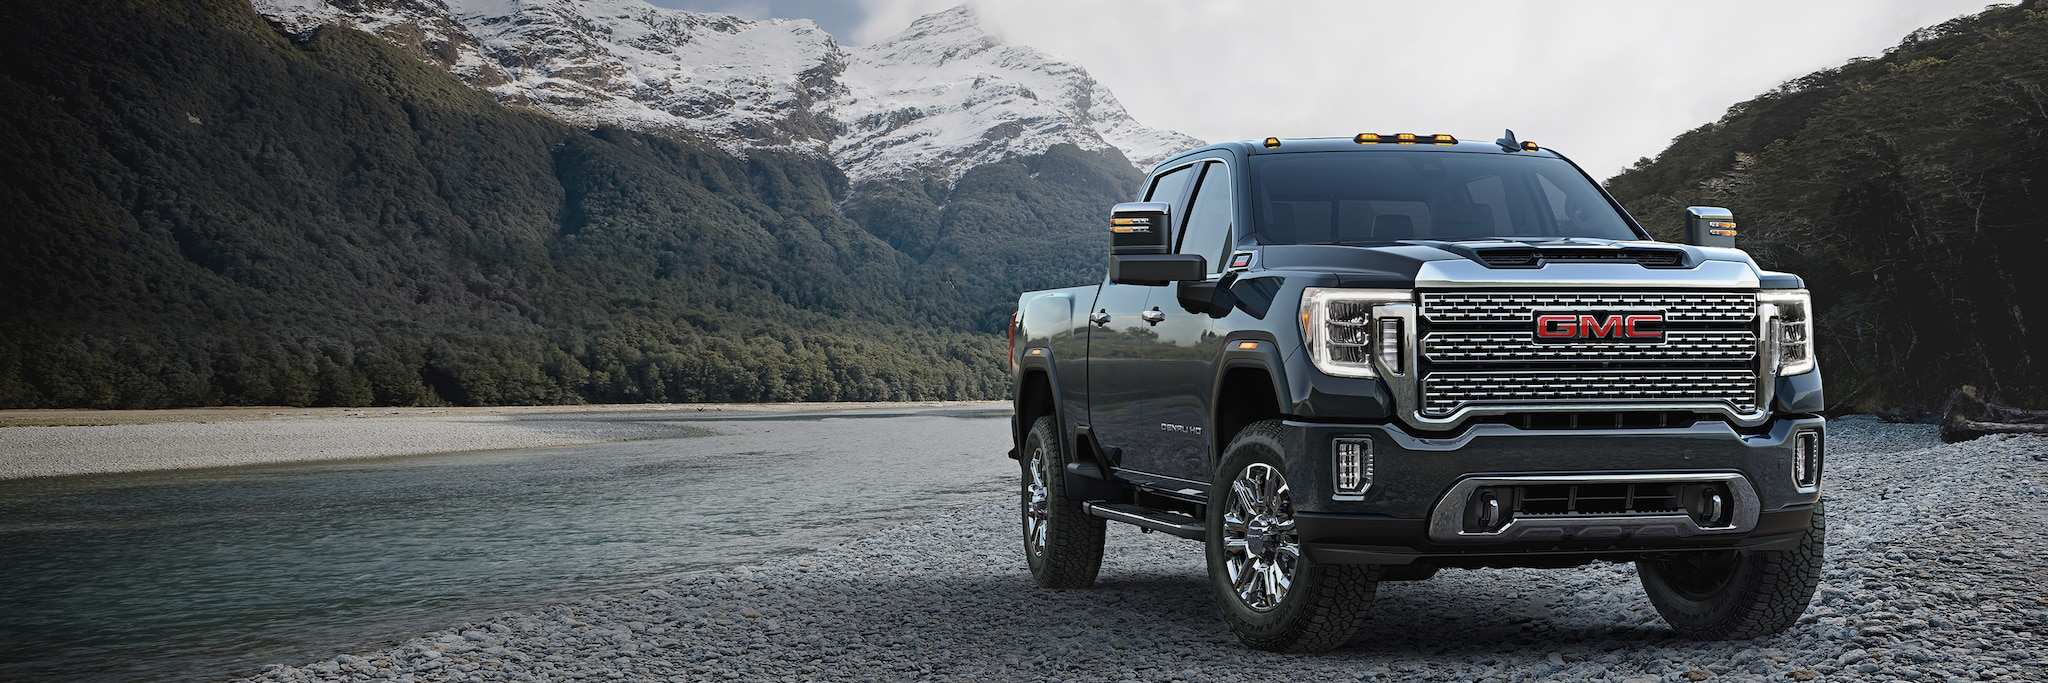 46 Concept of 2020 Gmc Sierra 2500 Engine Options Prices with 2020 Gmc Sierra 2500 Engine Options